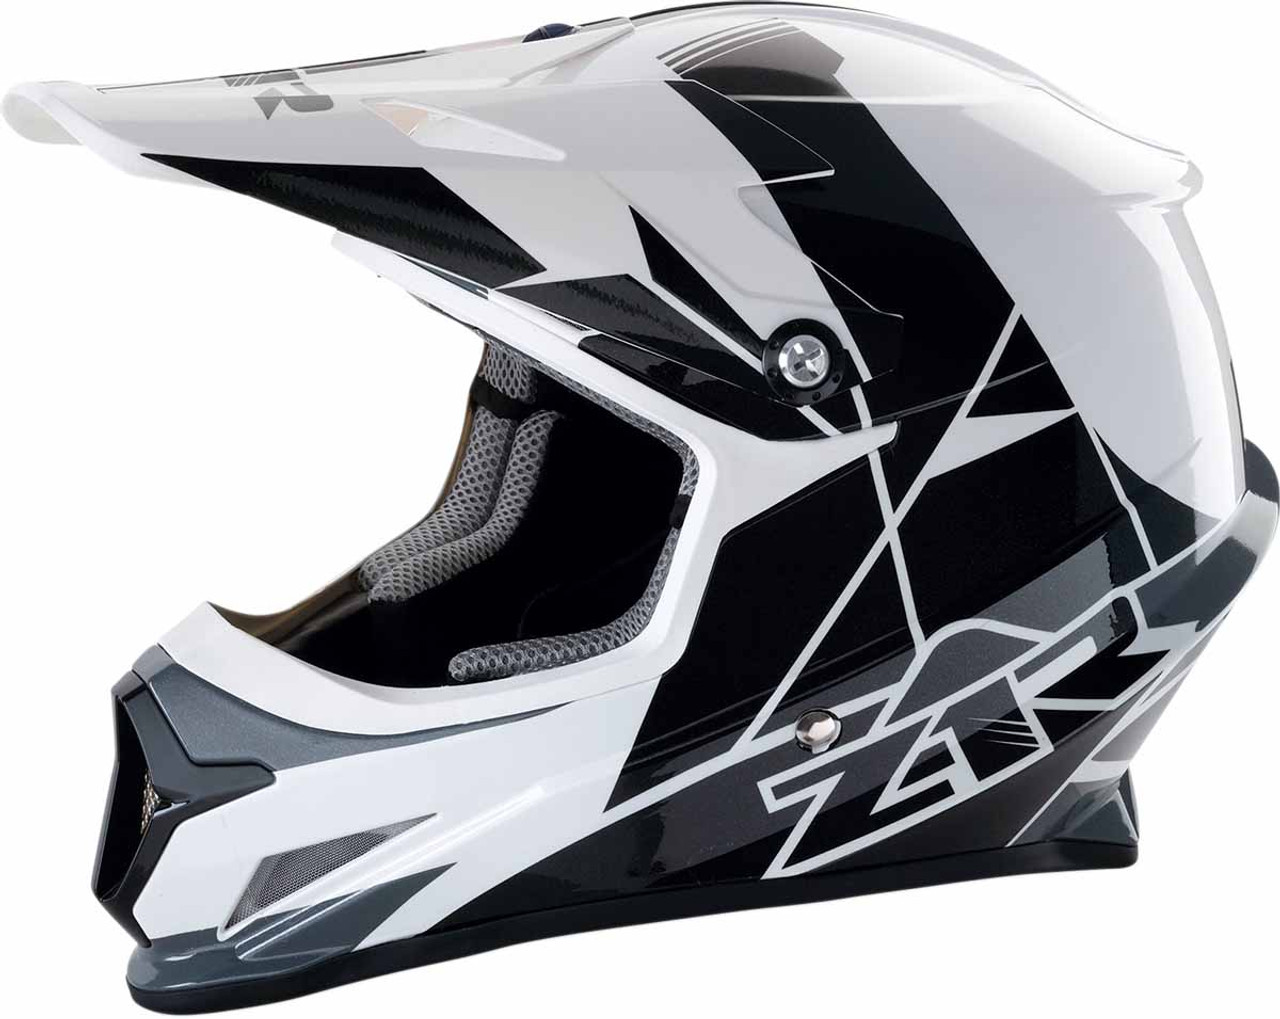 be9e664a1d4b4 Z1R Phantom   Stance Face Shield - RevZilla